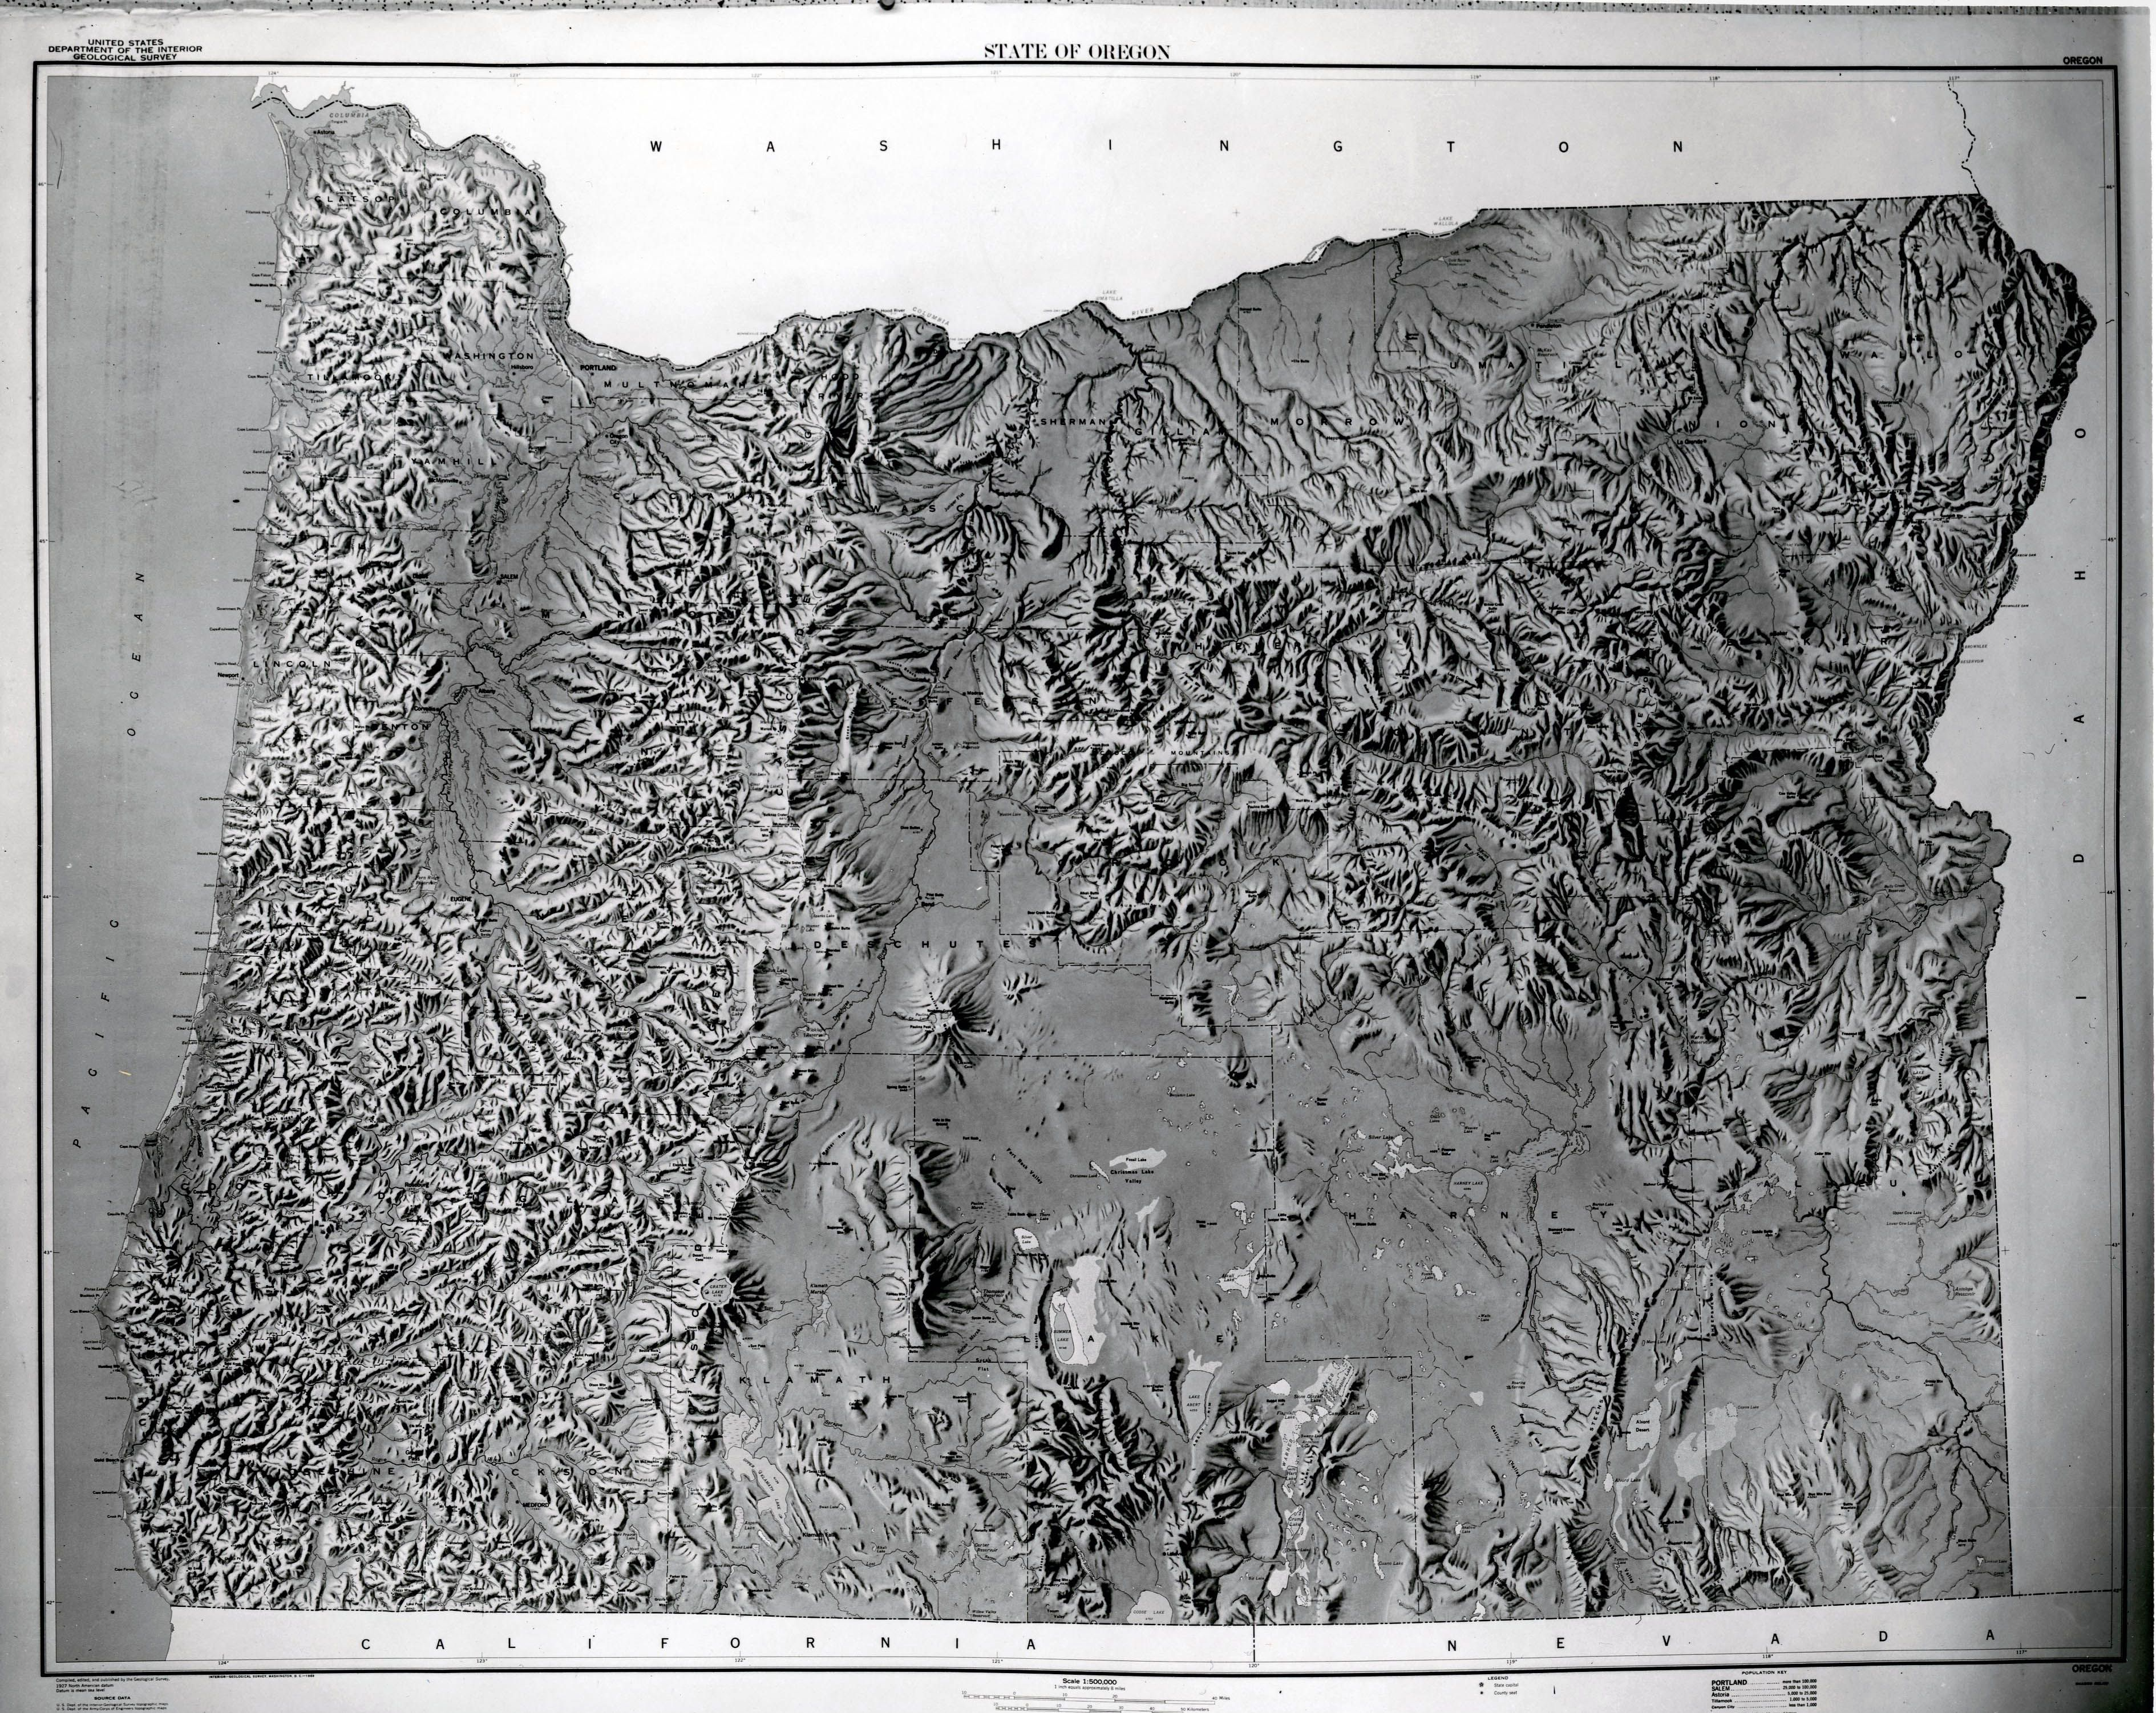 USGS topographical map of Oregon 1966 USGS